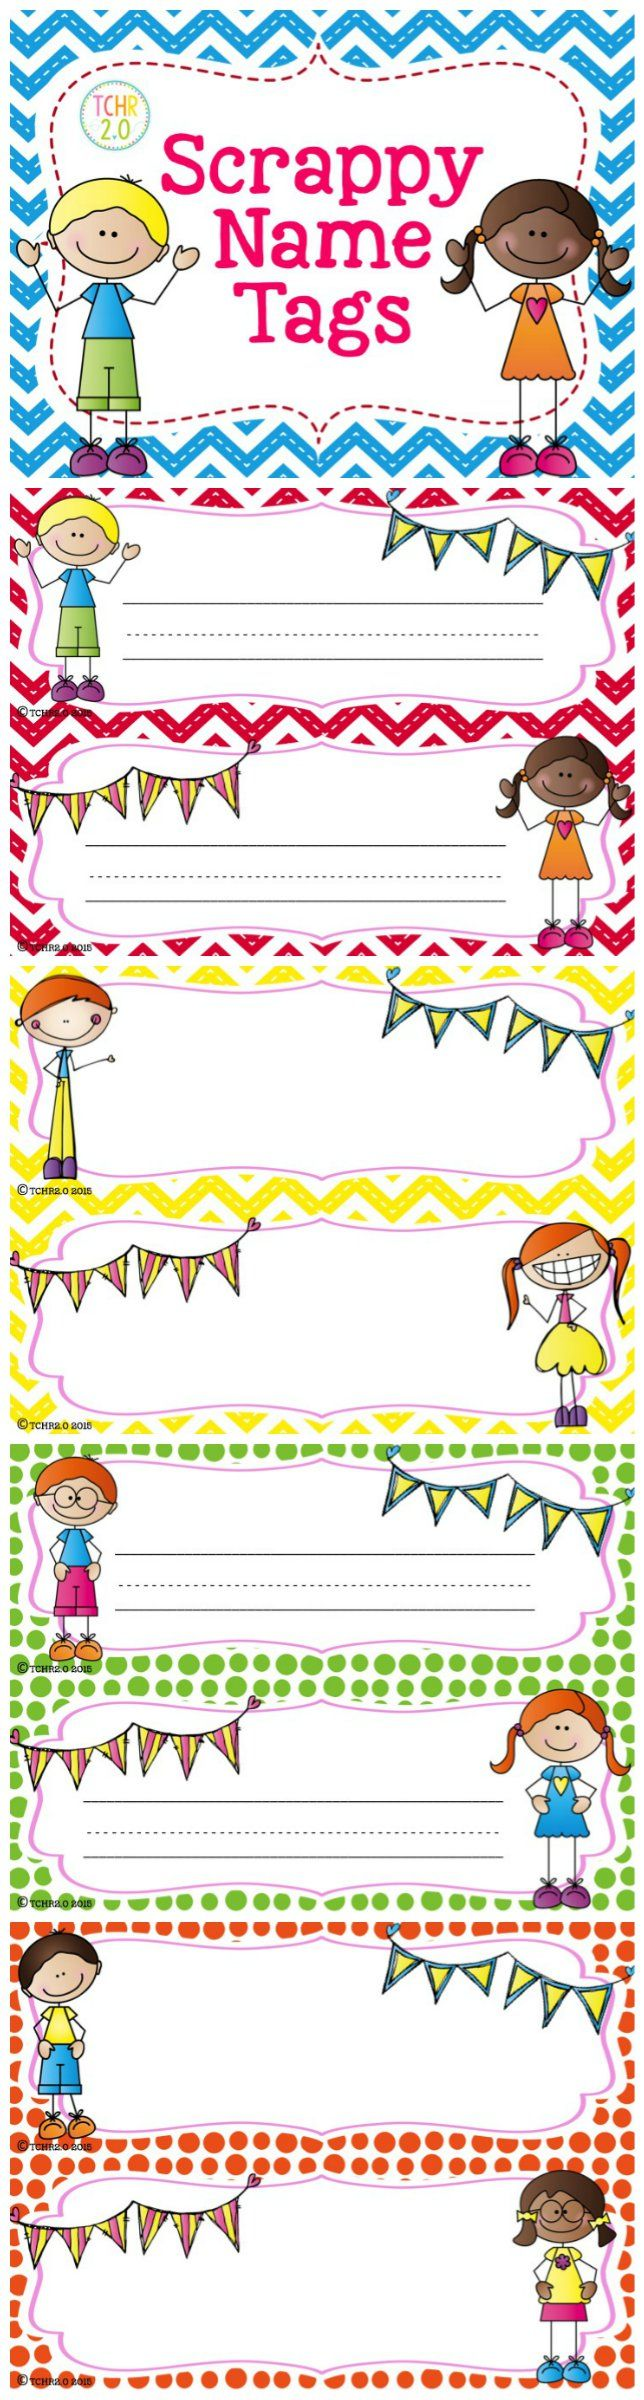 This is a set of editable desk plates with a Scrappy Kid theme. Available with chevron and polka dot background. Just insert a text box and type your kids' names or print and handwrite your students' names. Great for back to school!